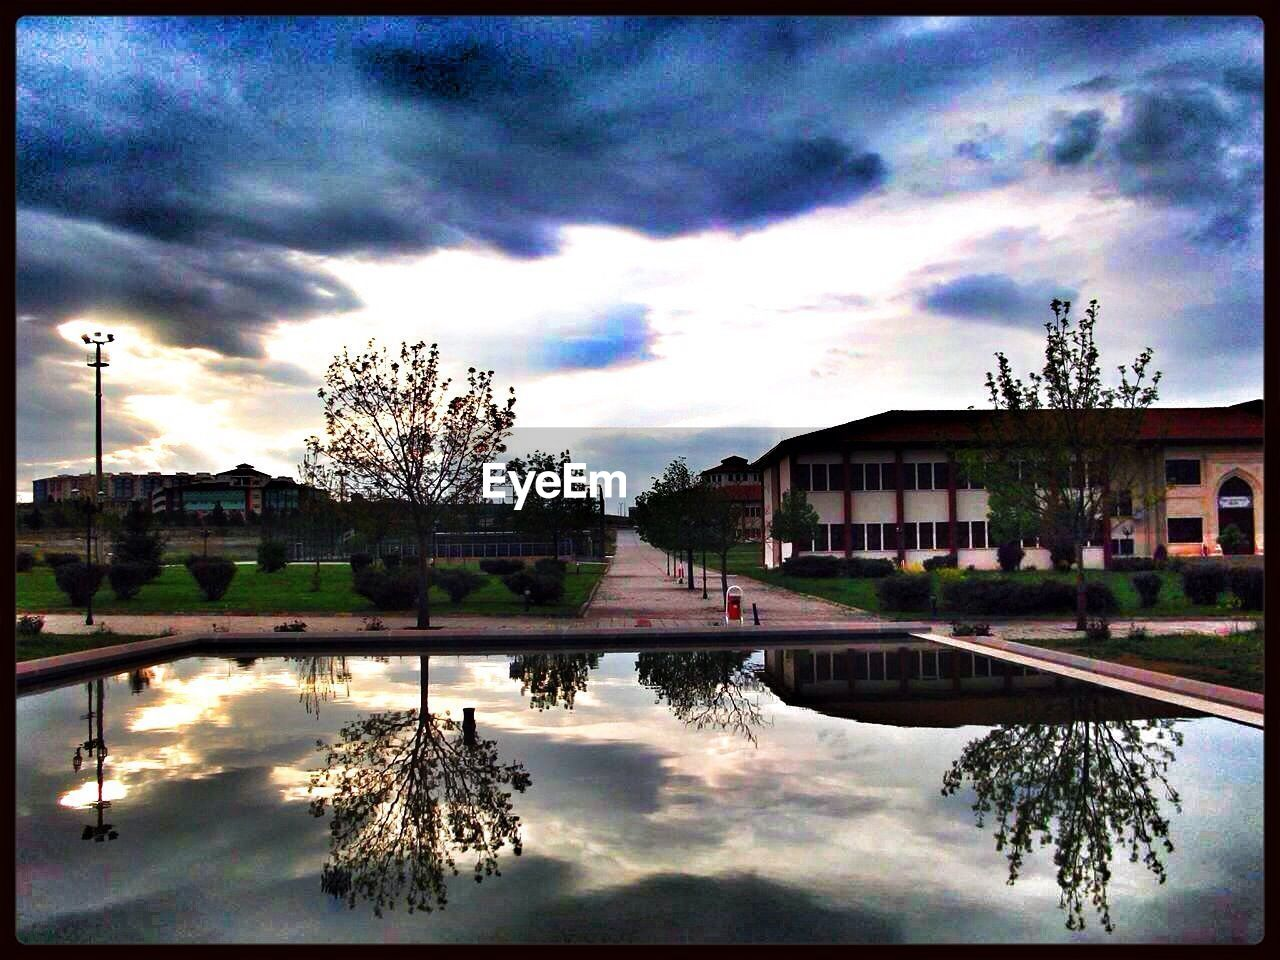 sky, reflection, cloud - sky, cloud, water, architecture, building exterior, tree, built structure, outdoors, no people, nature, puddle, day, beauty in nature, city